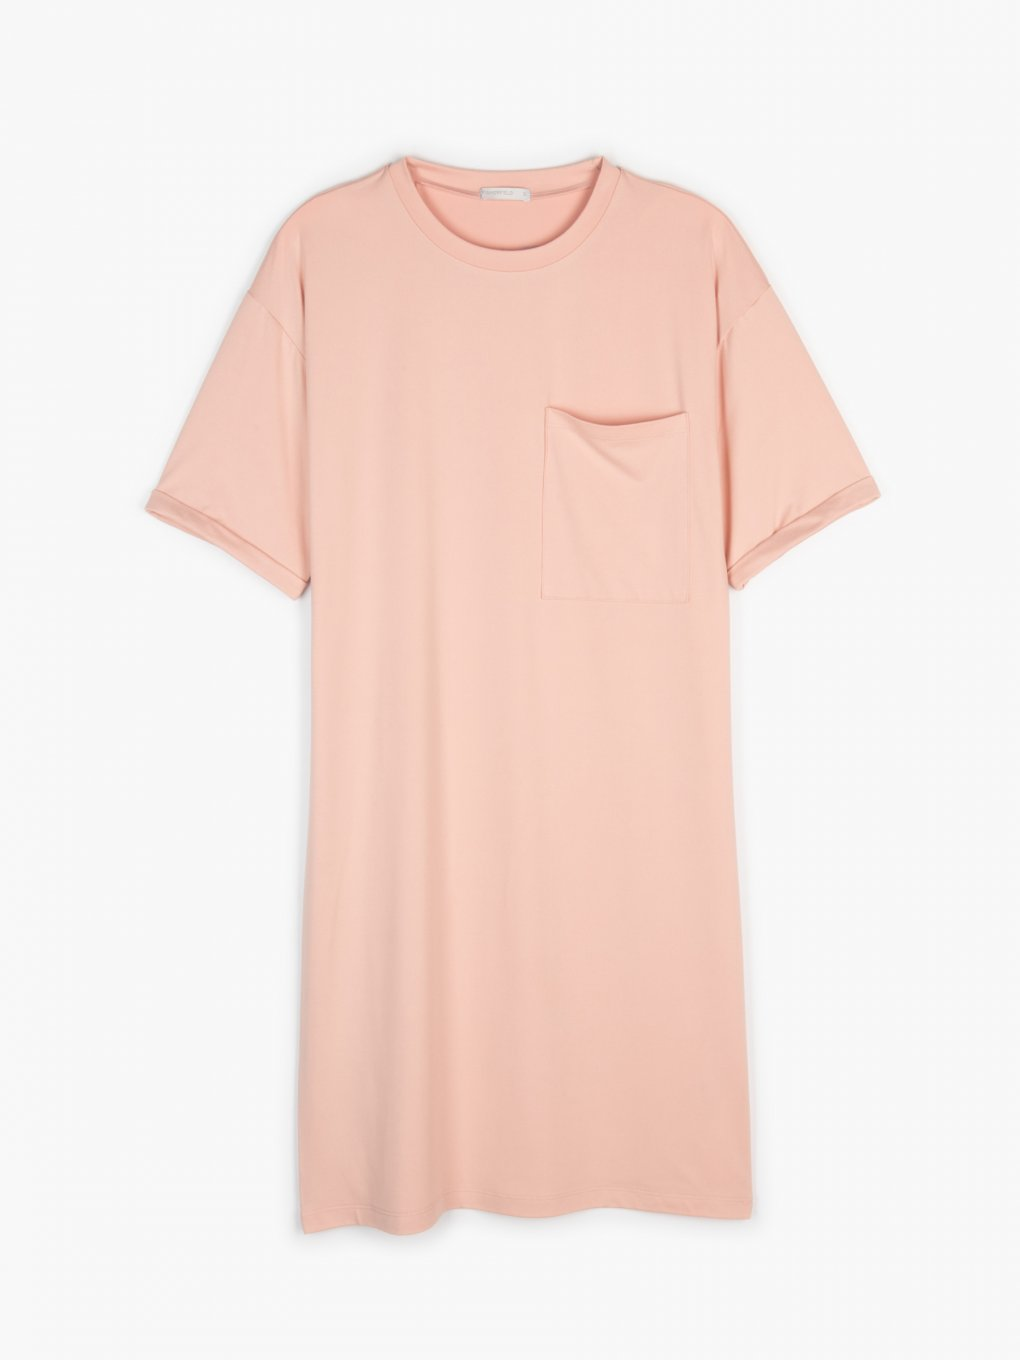 T-shirt dress with chest pocket